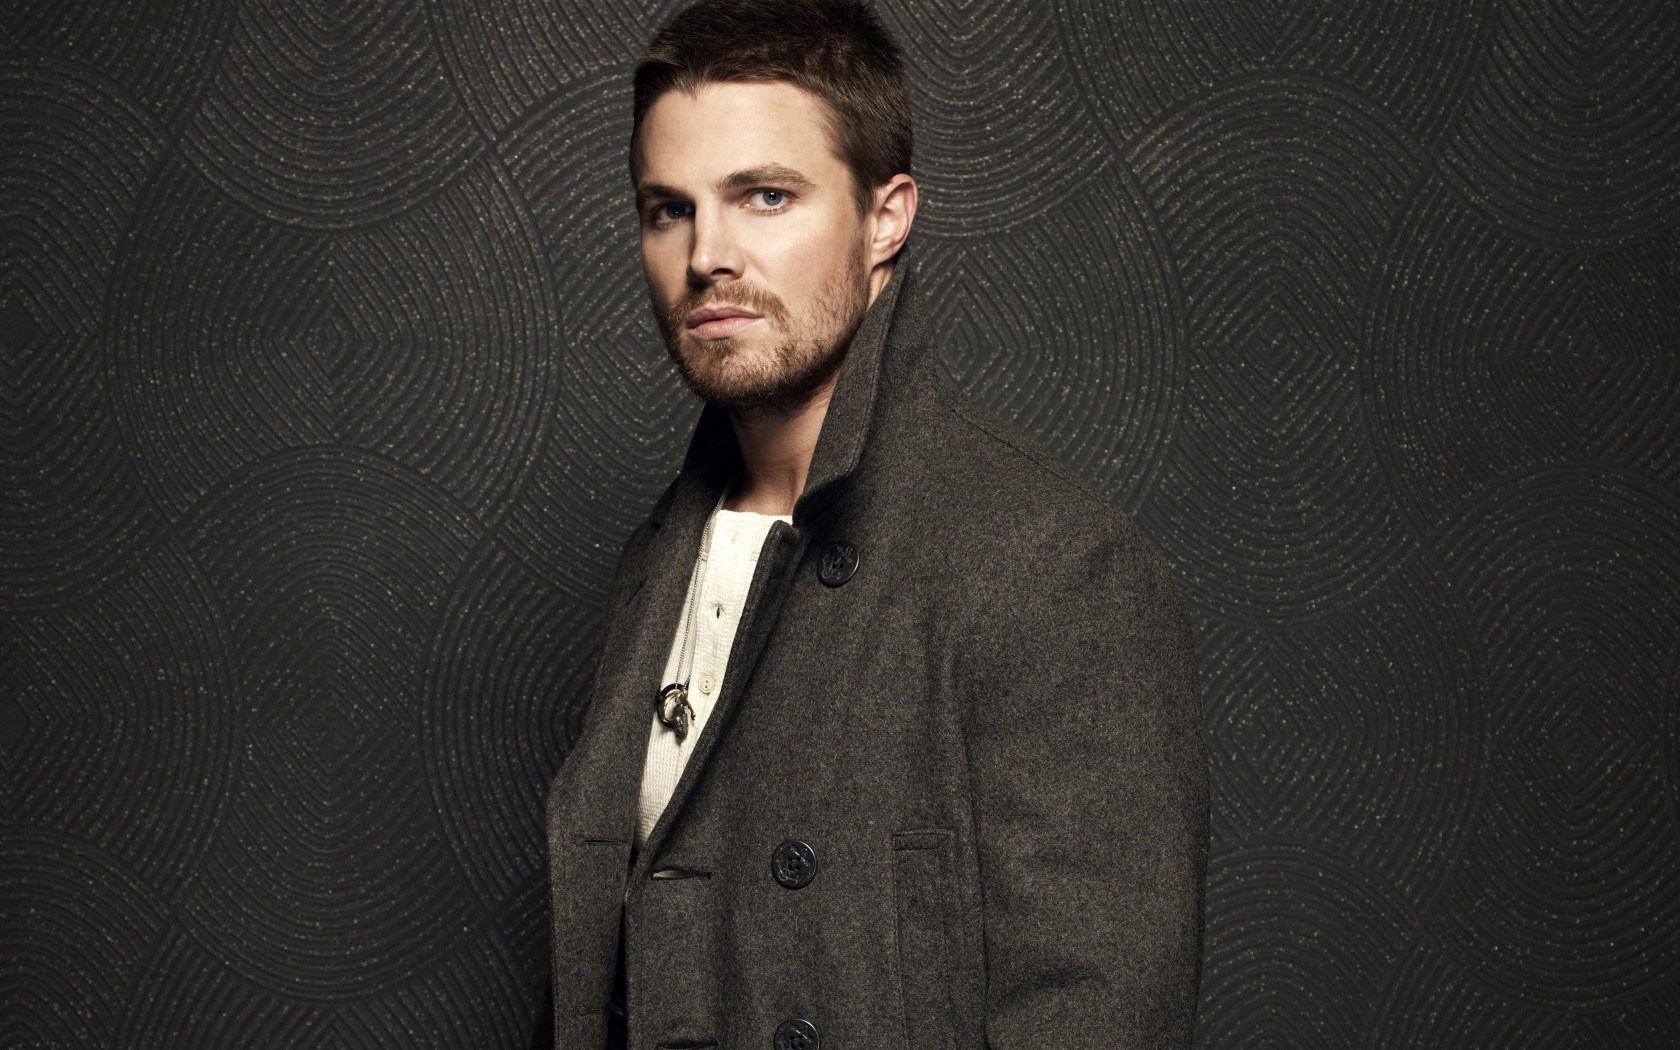 Free Stephen Amell Wallpaper